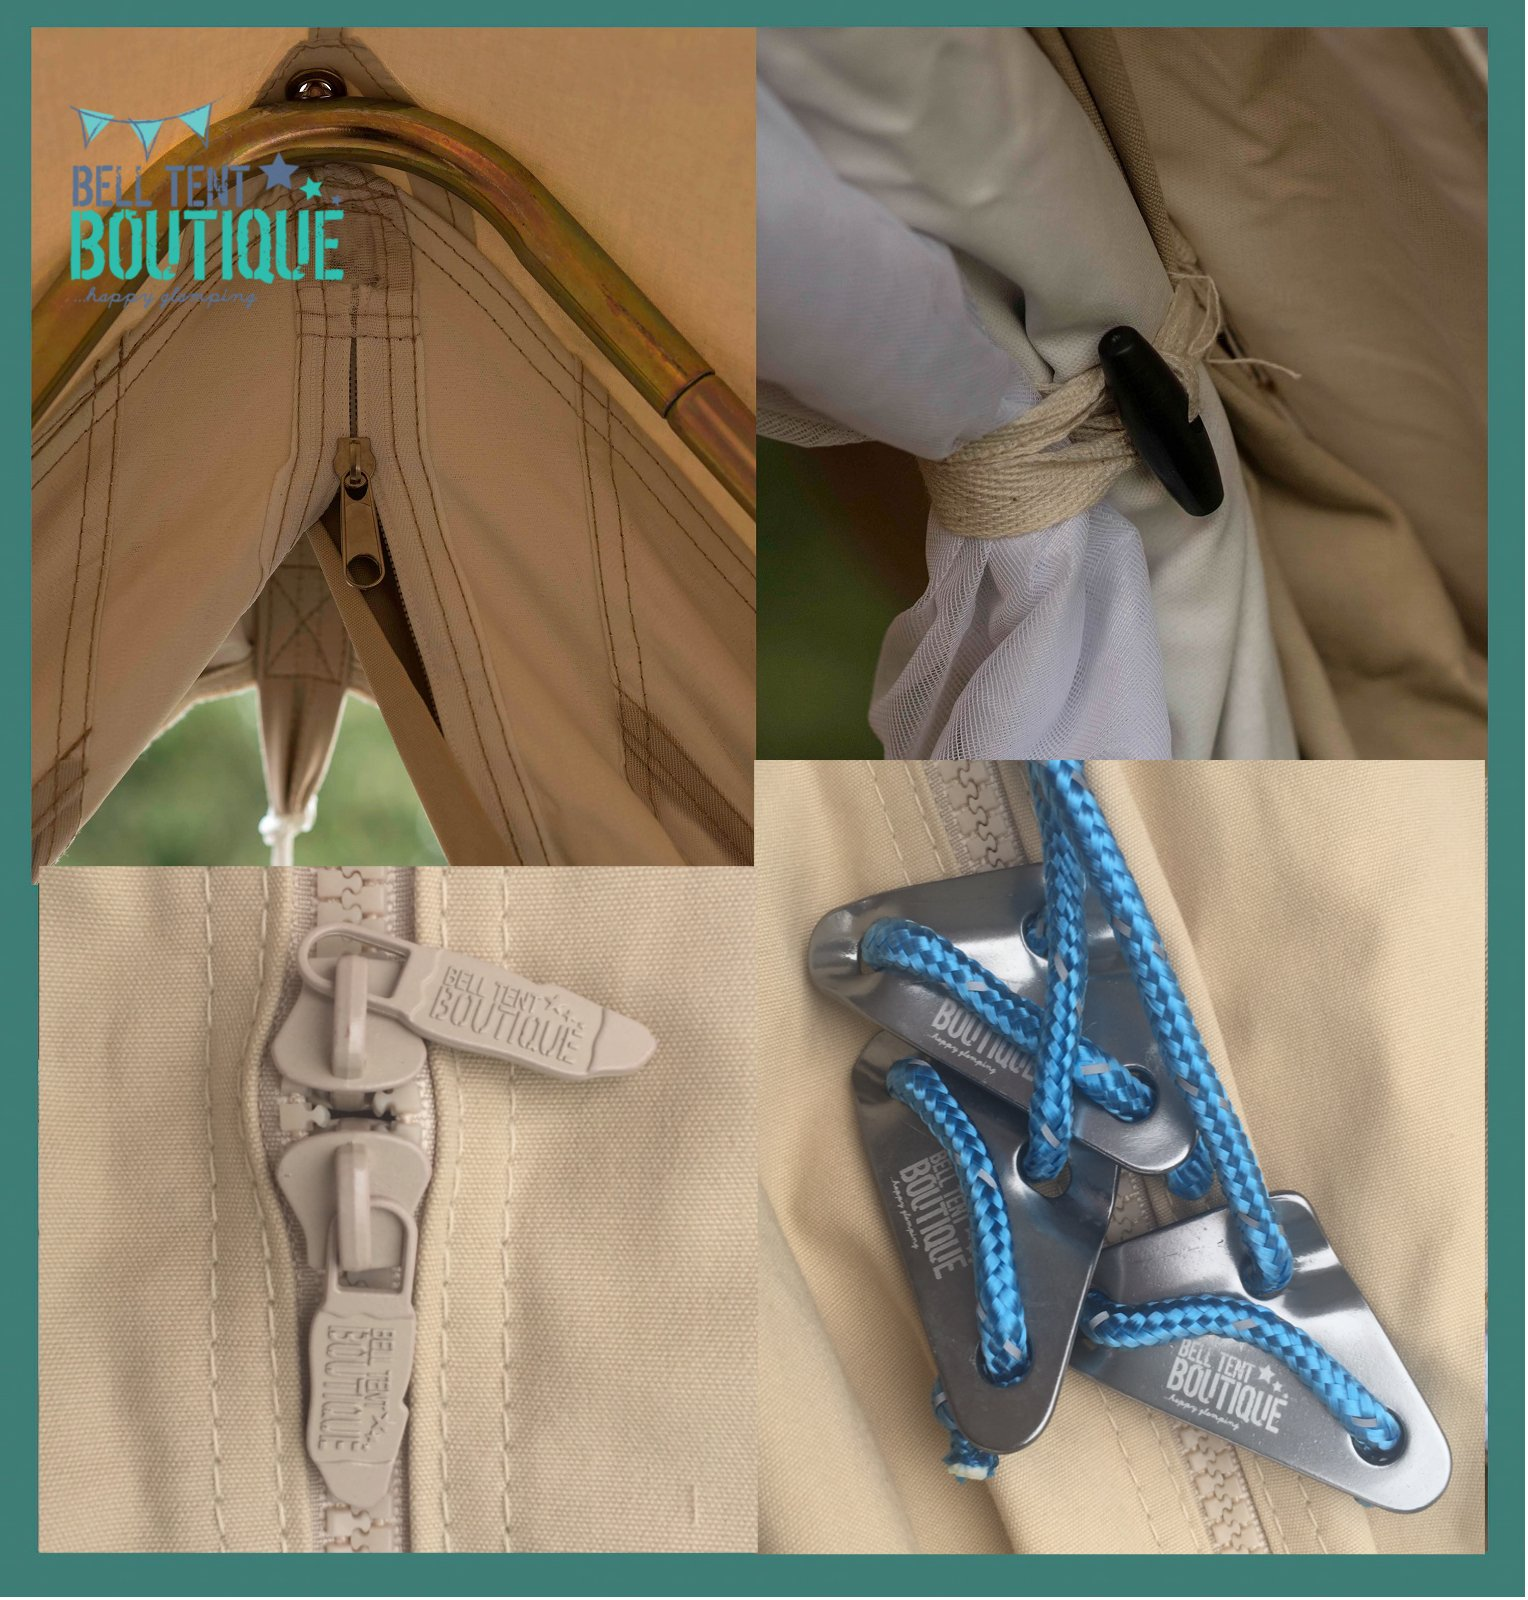 Bell Tent 3 metre with zipped in groundsheet by Bell Tent Boutique 3